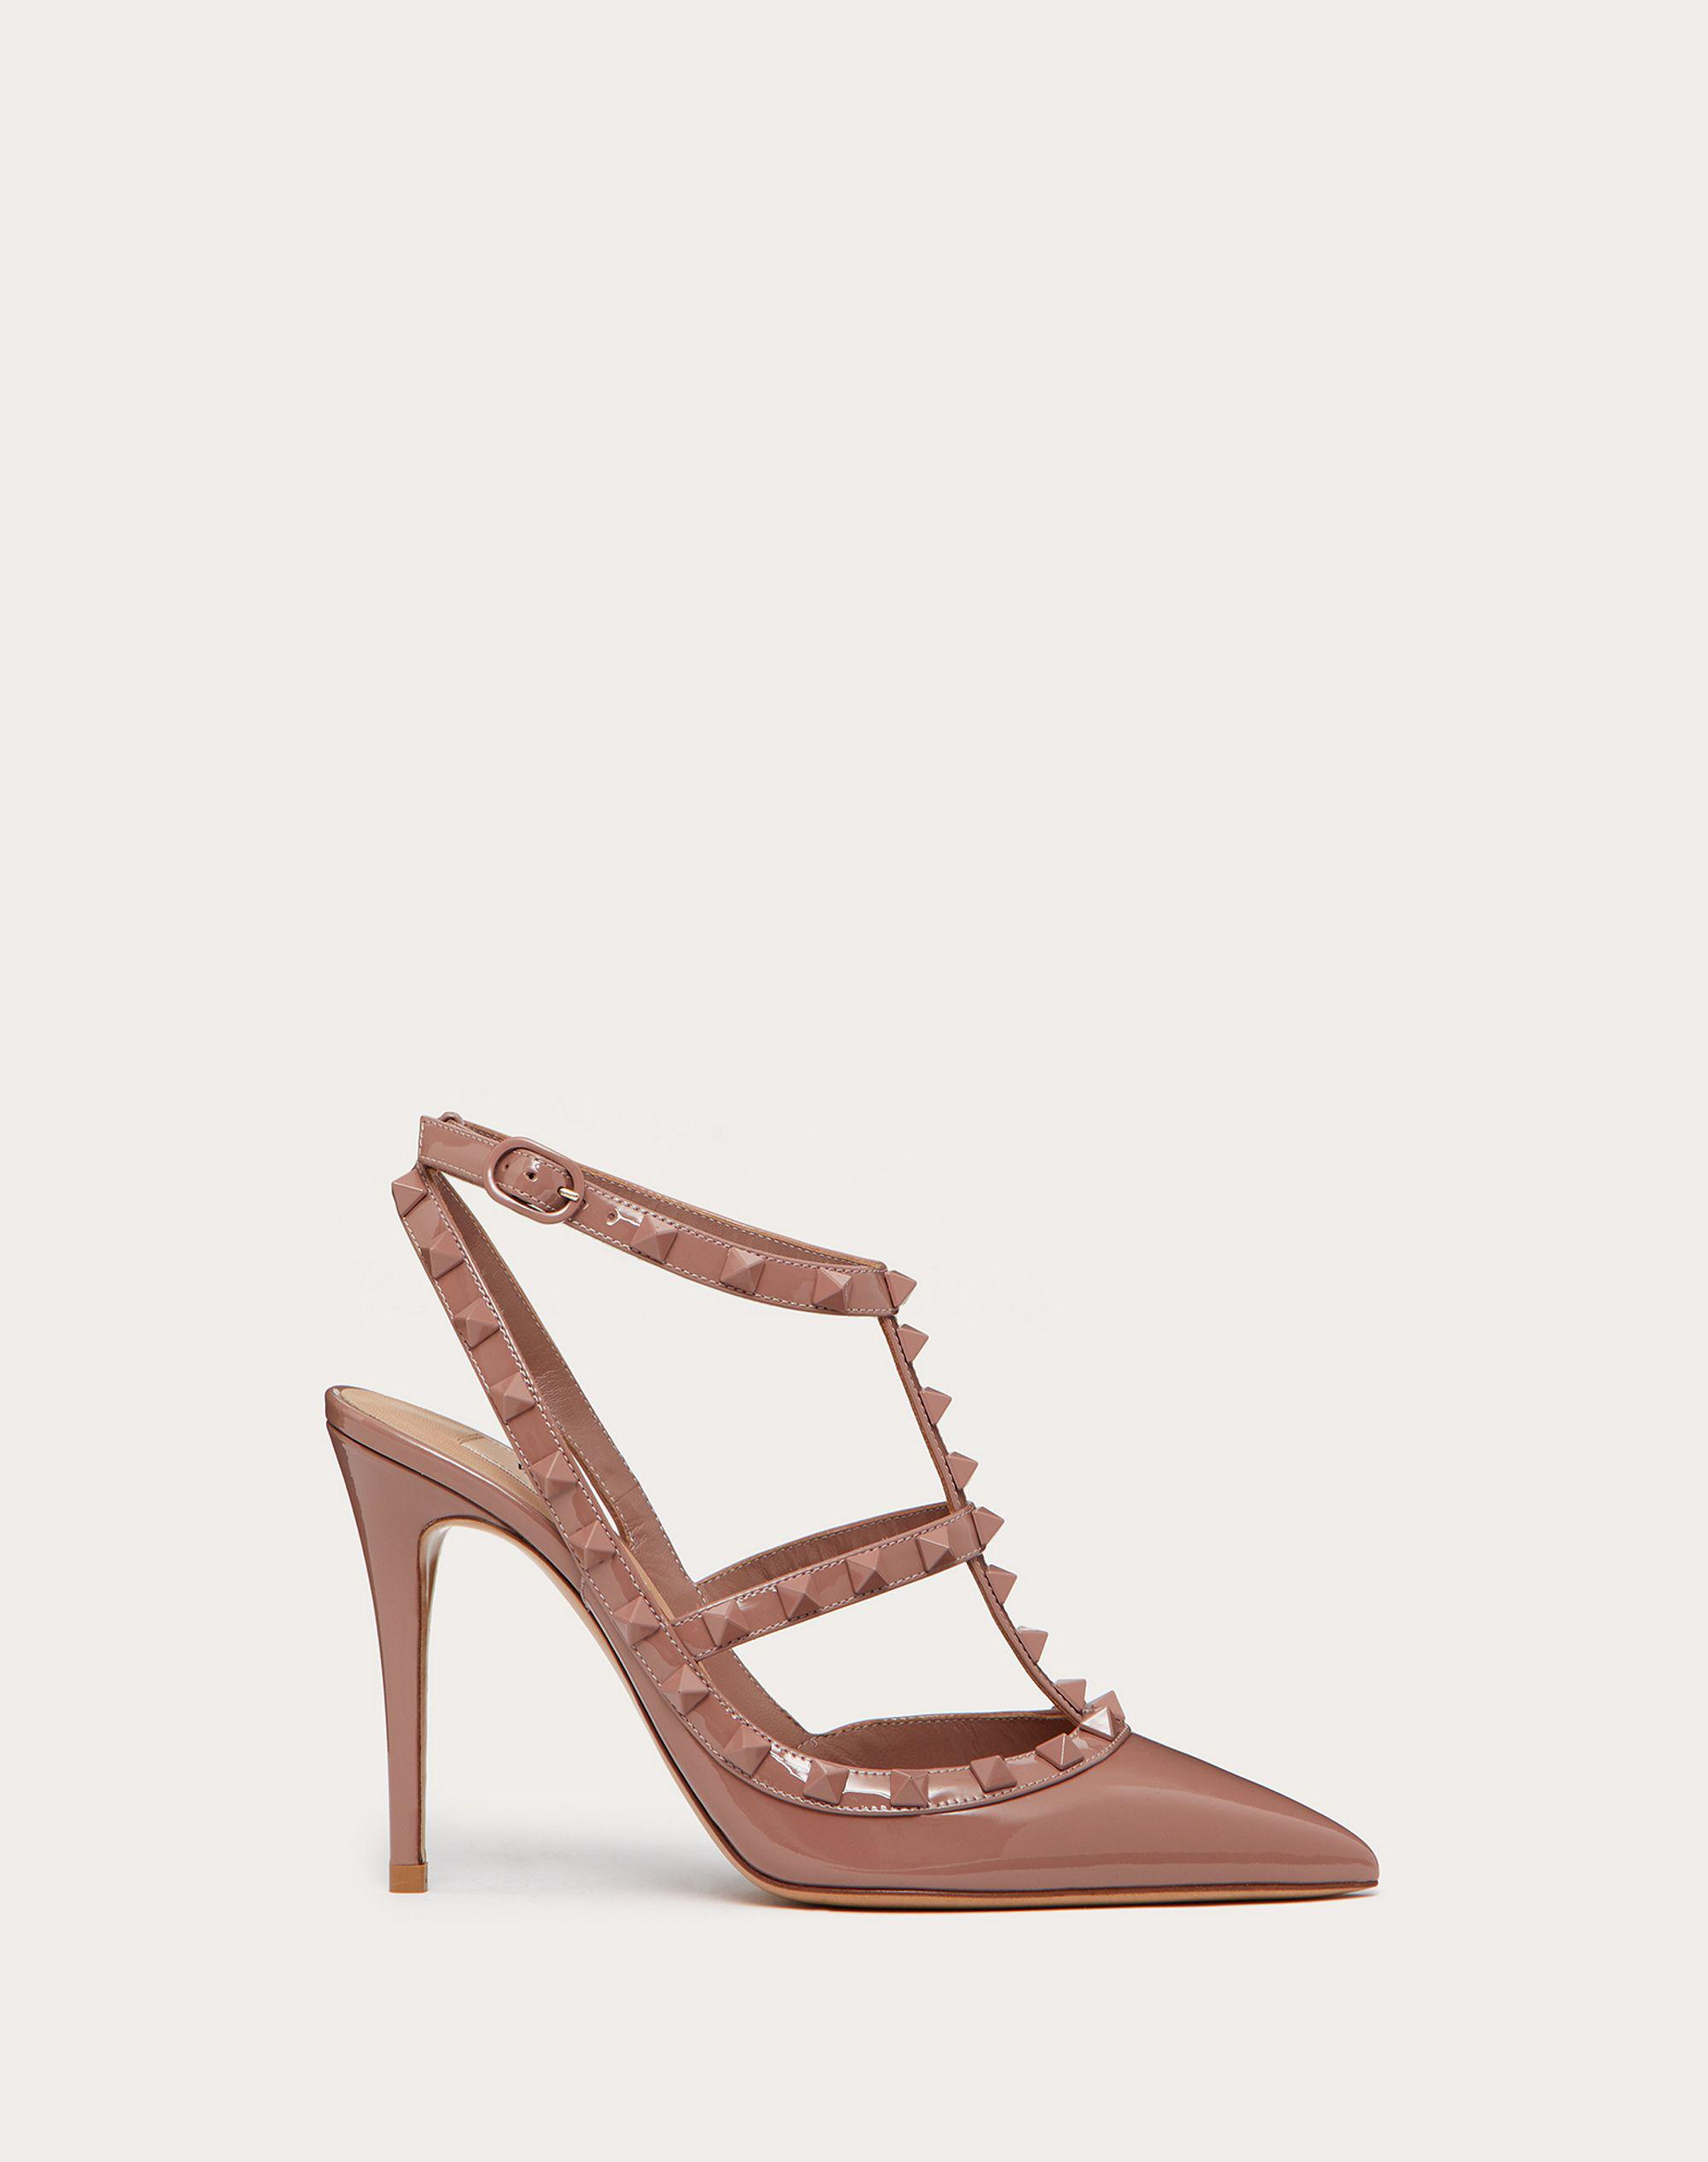 ROCKSTUD ANKLE STRAP PATENT-LEATHER PUMP WITH TONAL STUDS 100 MM 0